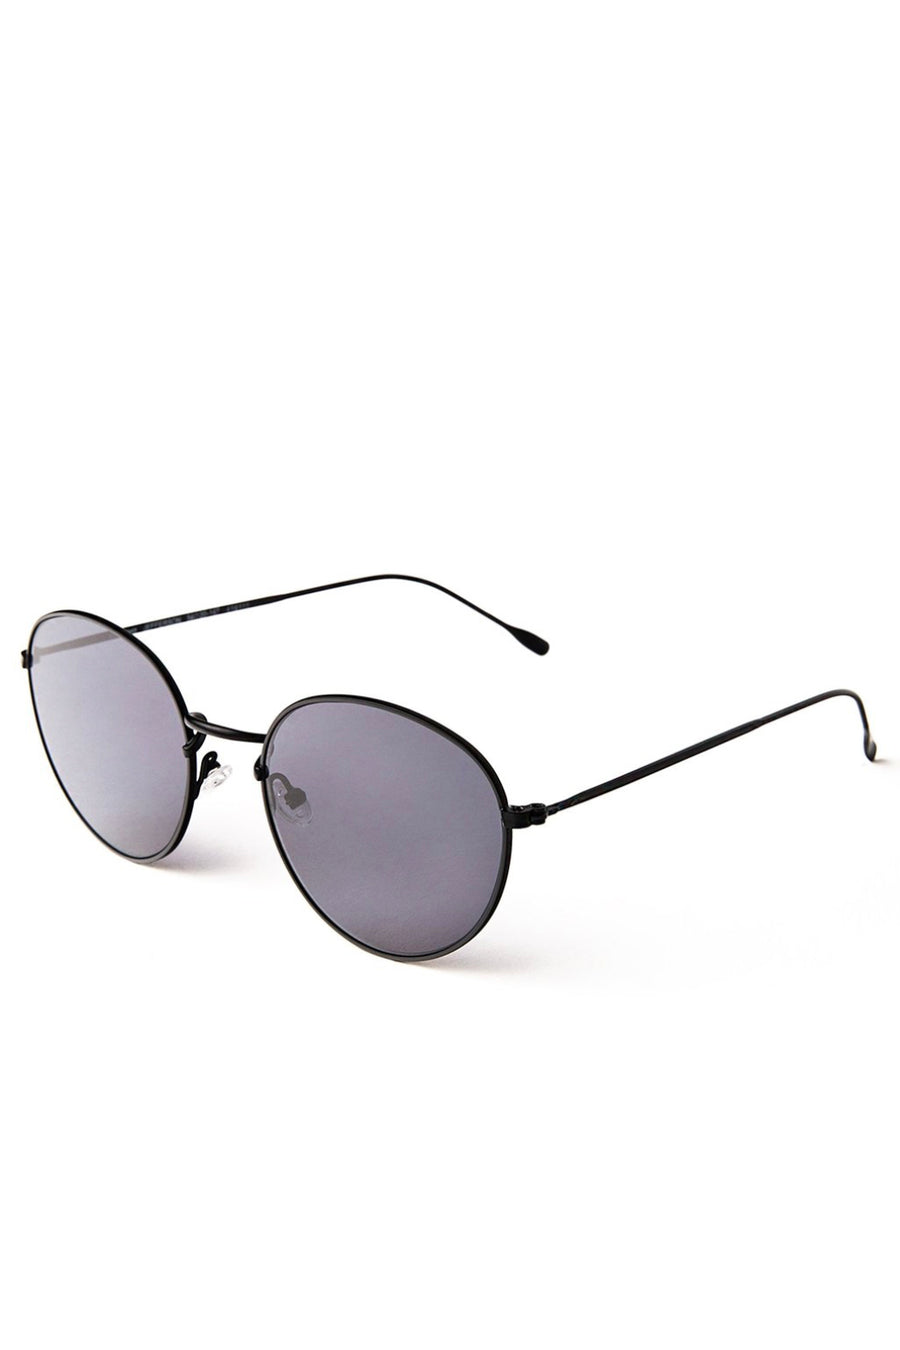 Jefferson 54 - Matte Black w/ Grey Flat Lenses